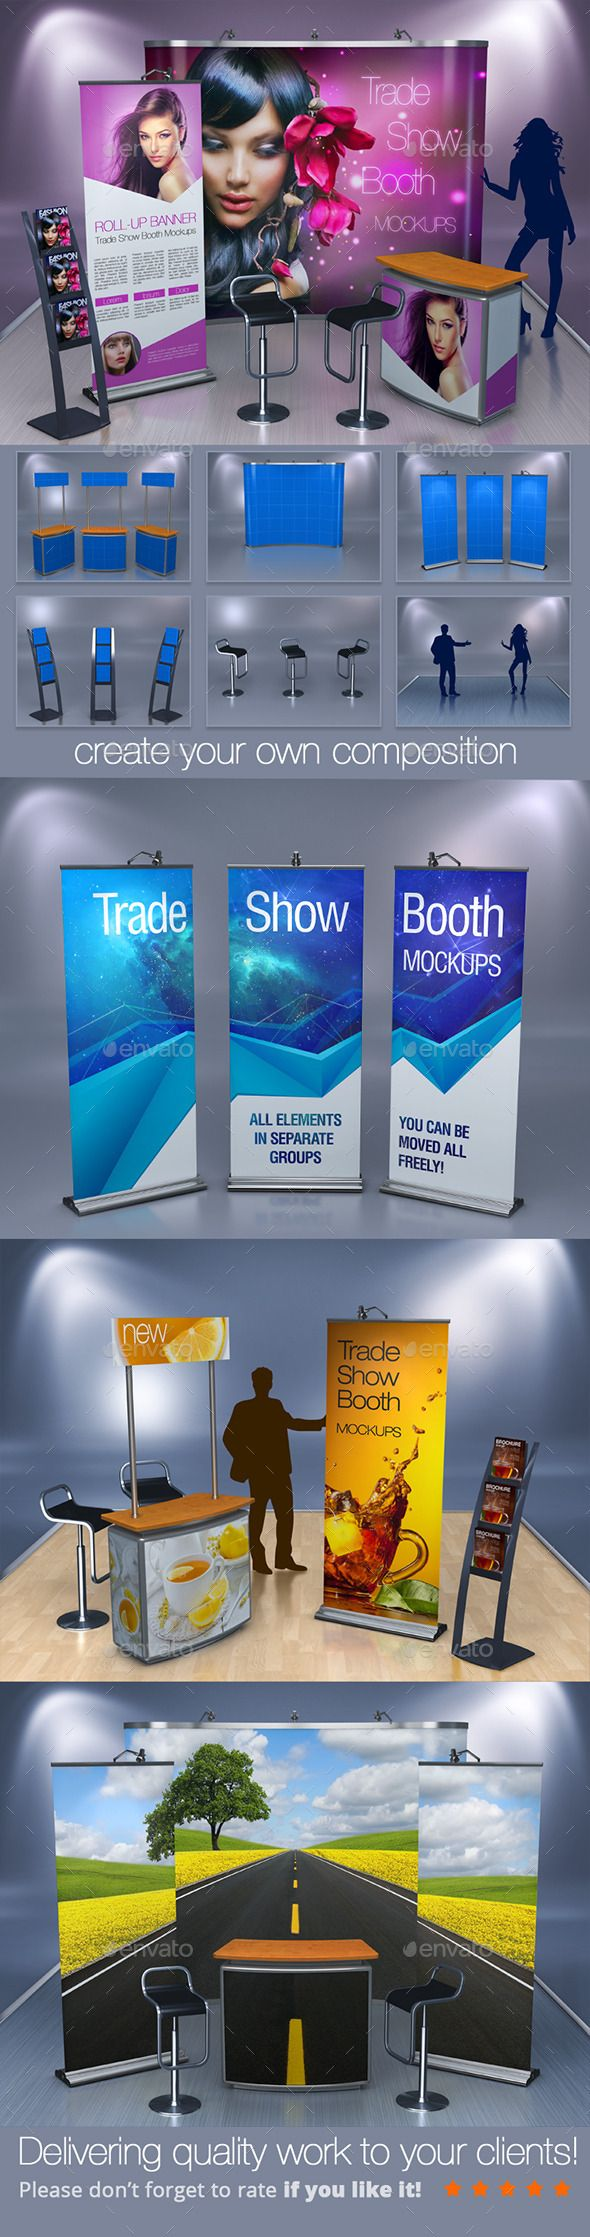 Trade Show Booth Mockups — Photoshop PSD #stool #brochure • Available here → https://graphicriver.net/item/trade-show-booth-mockups/12038663?ref=pxcr